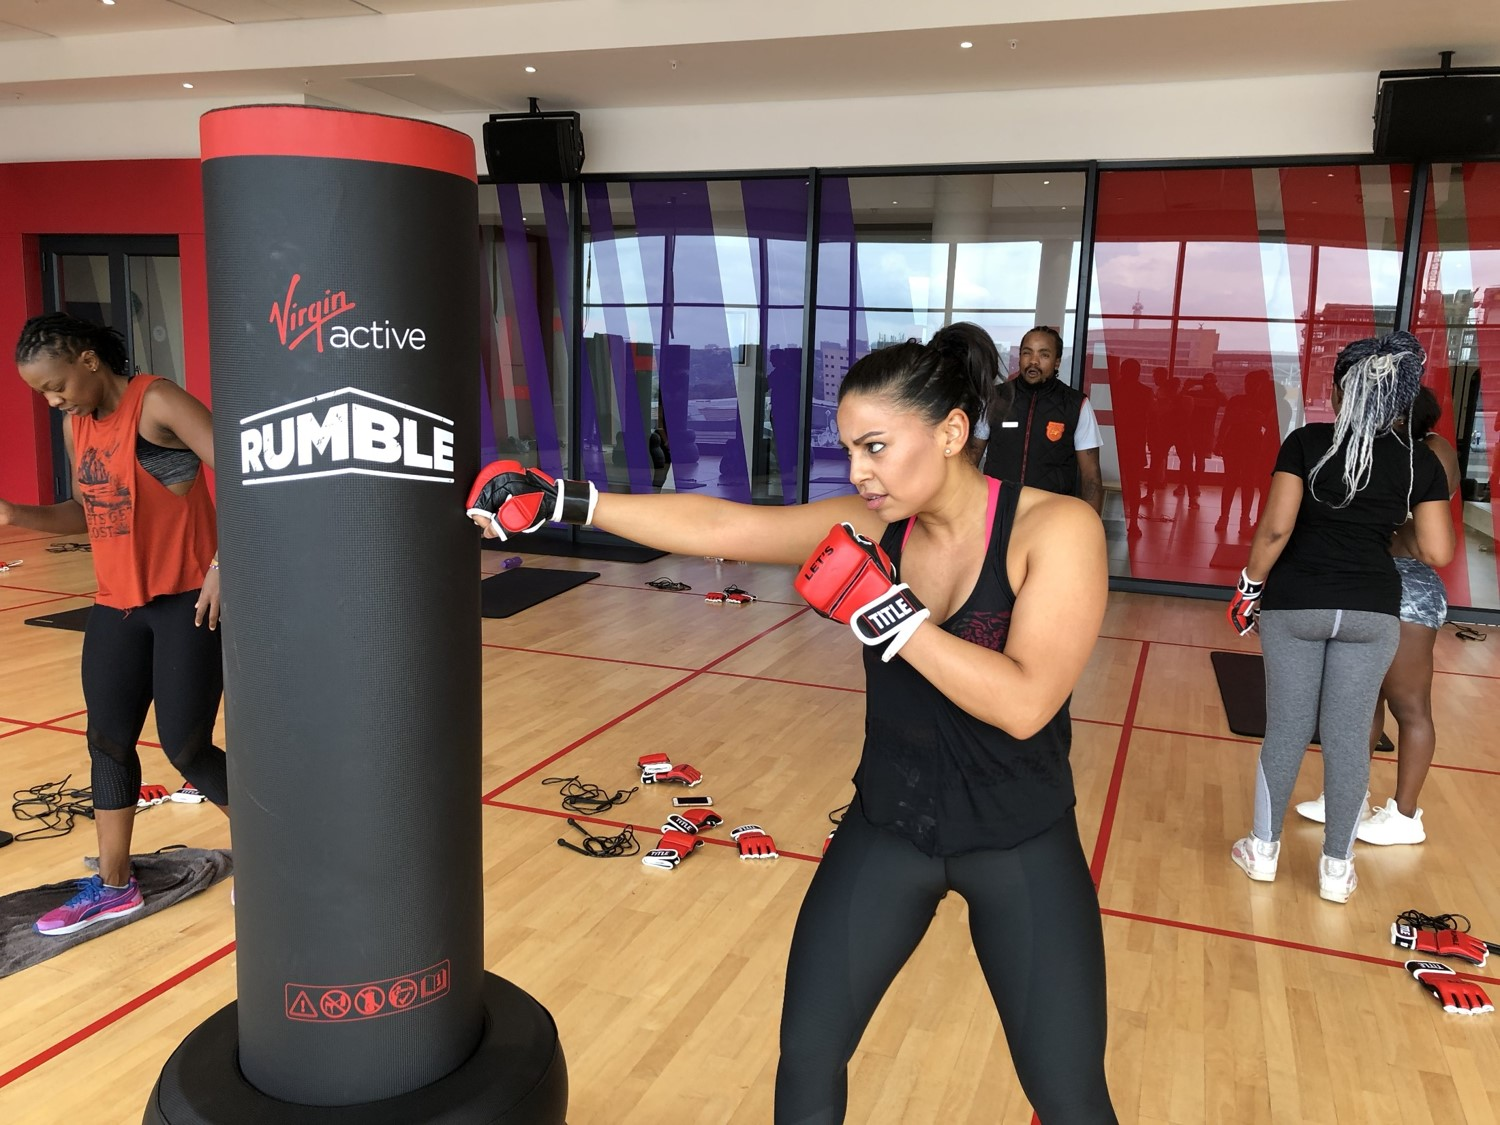 Gym Review: Virgin Active's new 'RUMBLE' class